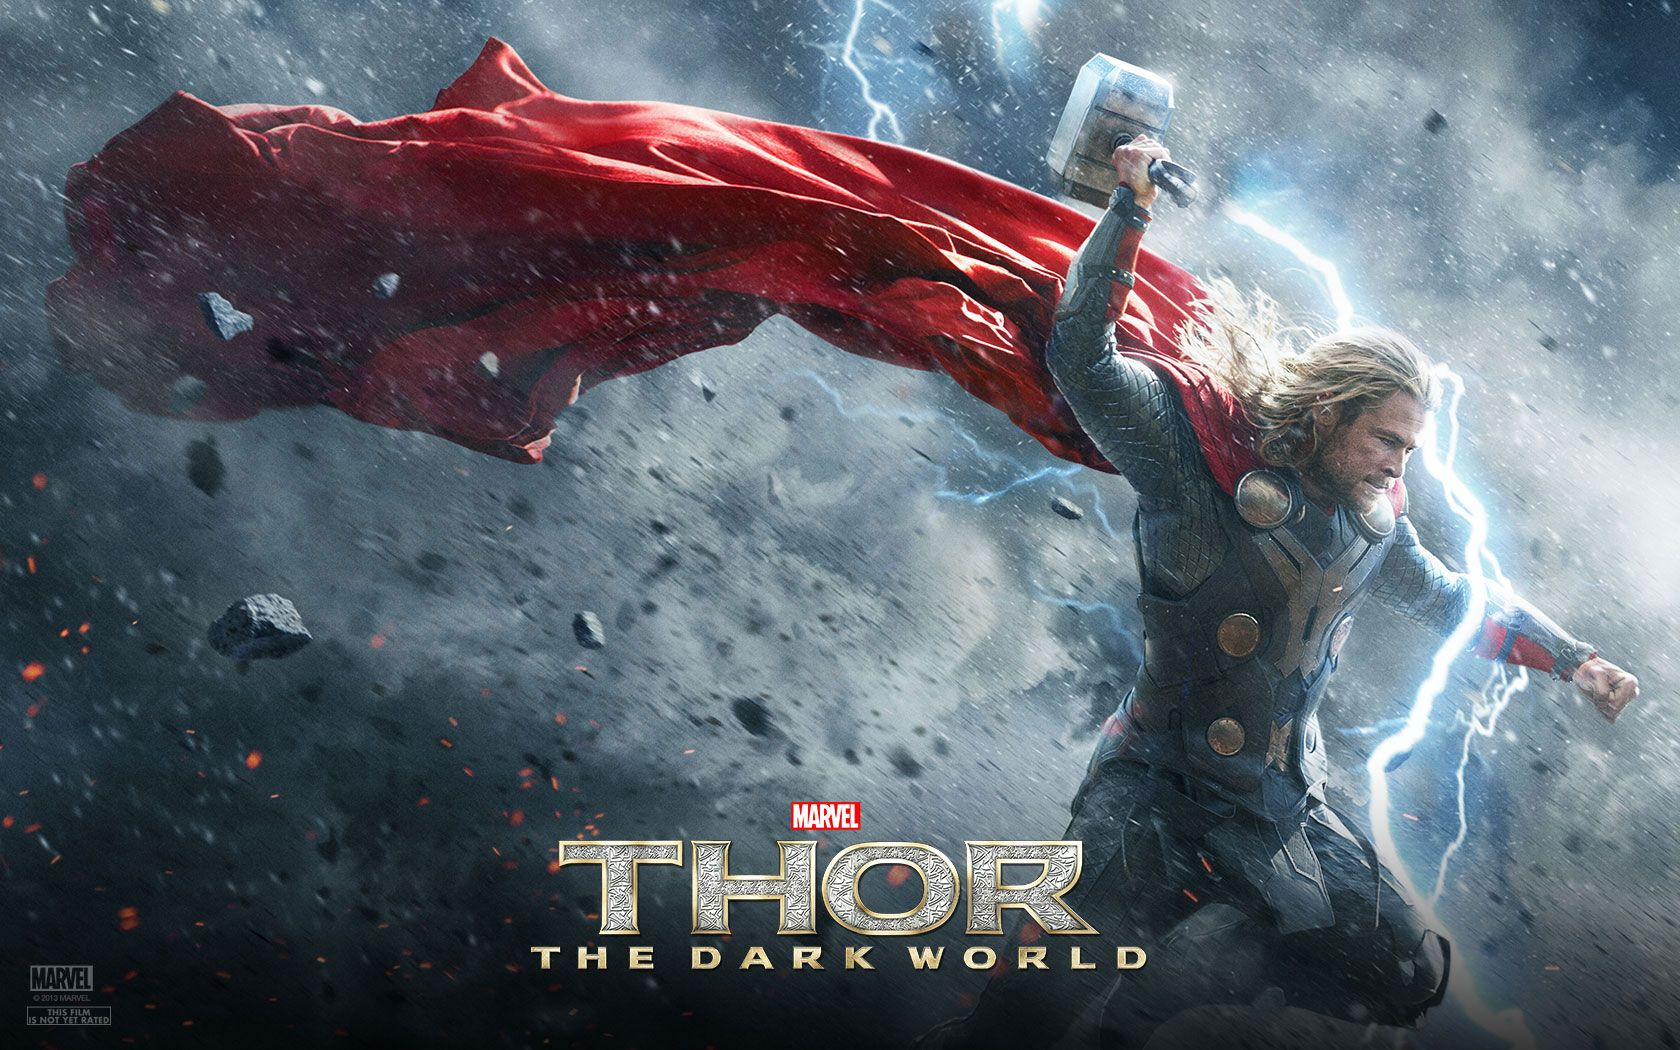 Thor 2 The Dark World 2013 Movie Wallpapers Hd Facebook Covers The Dark World Thor Marvel Thor